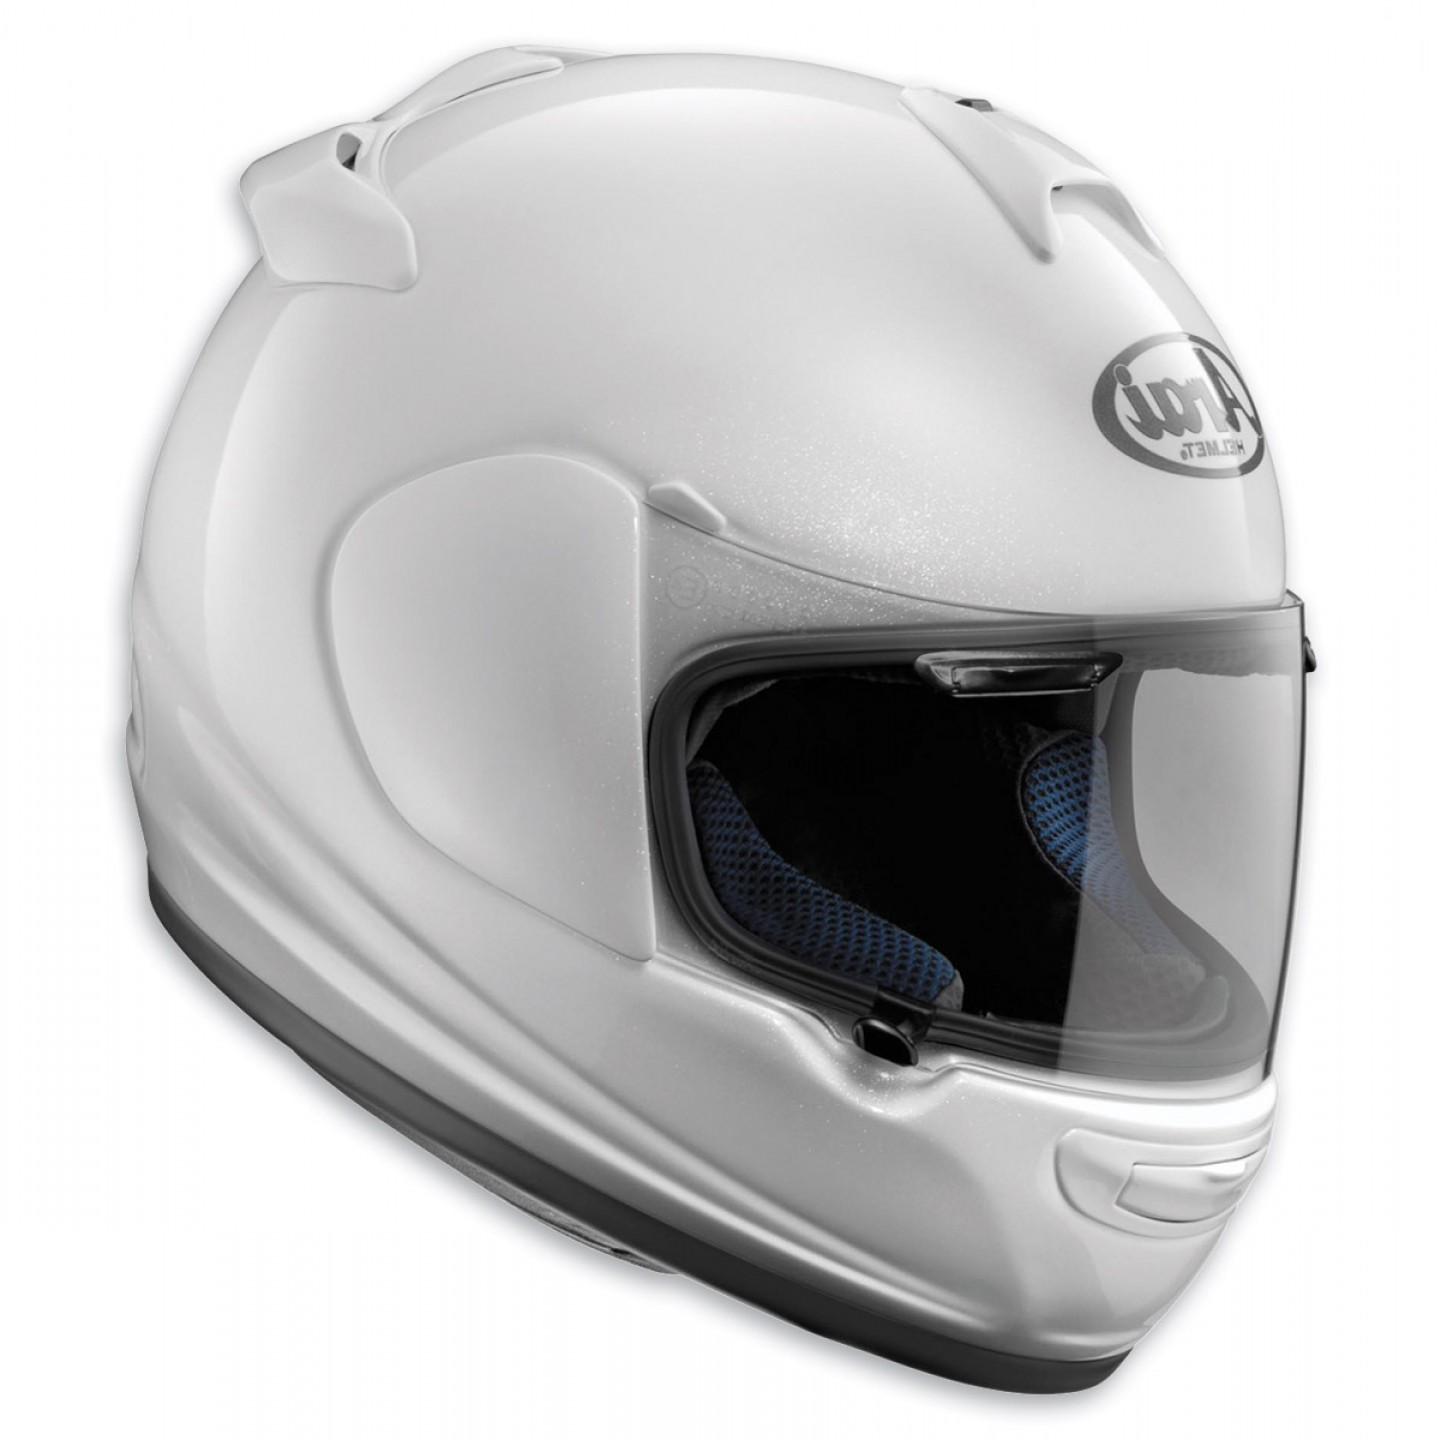 Arai Vector 2 Model: Arai Vector Diamond White Full Face Helmet